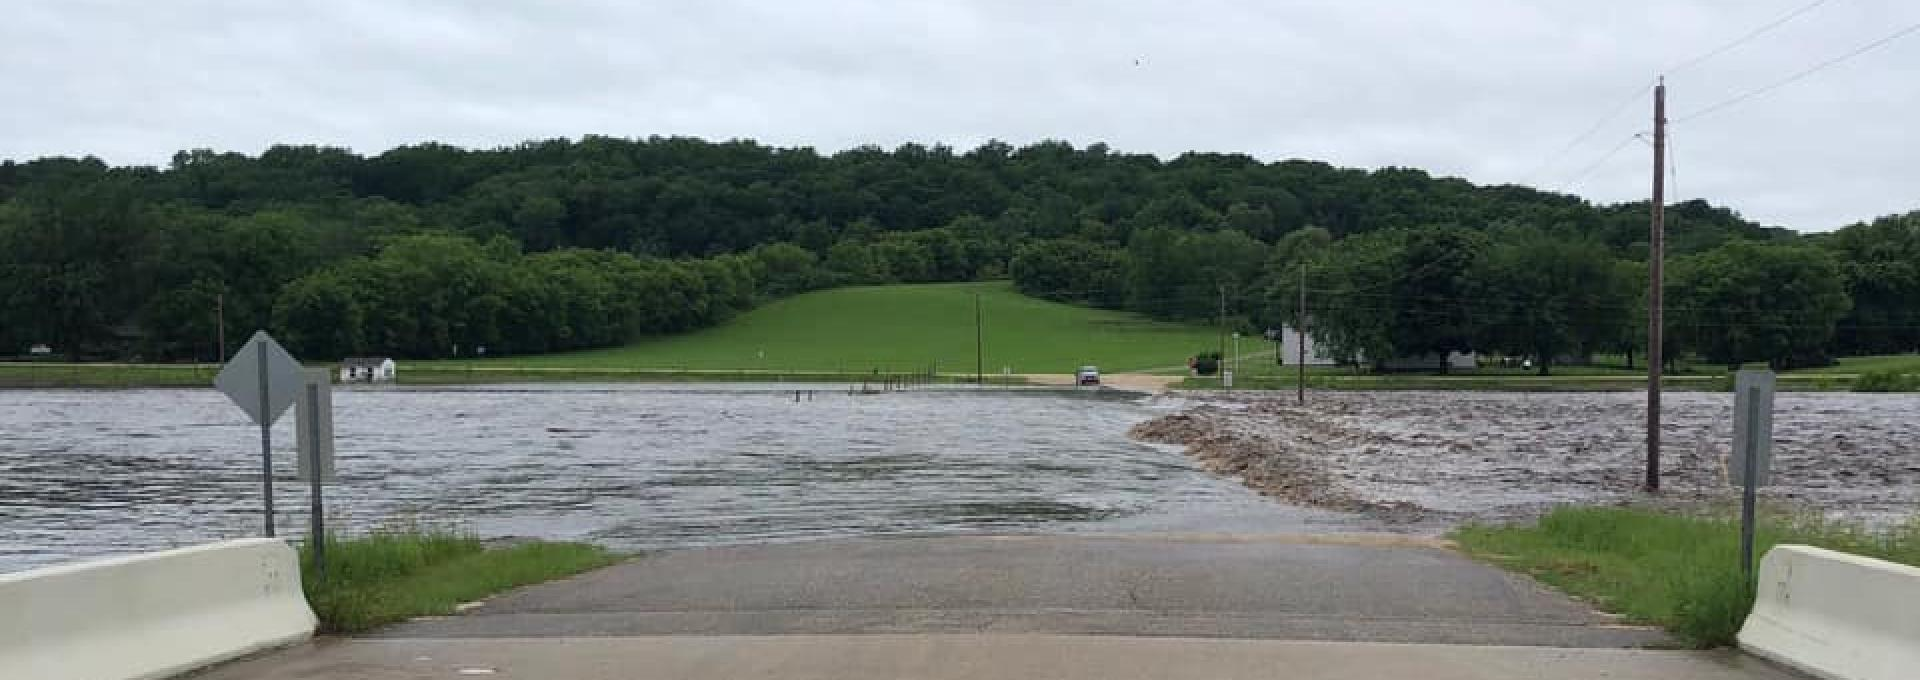 Flooding in Olmsted County